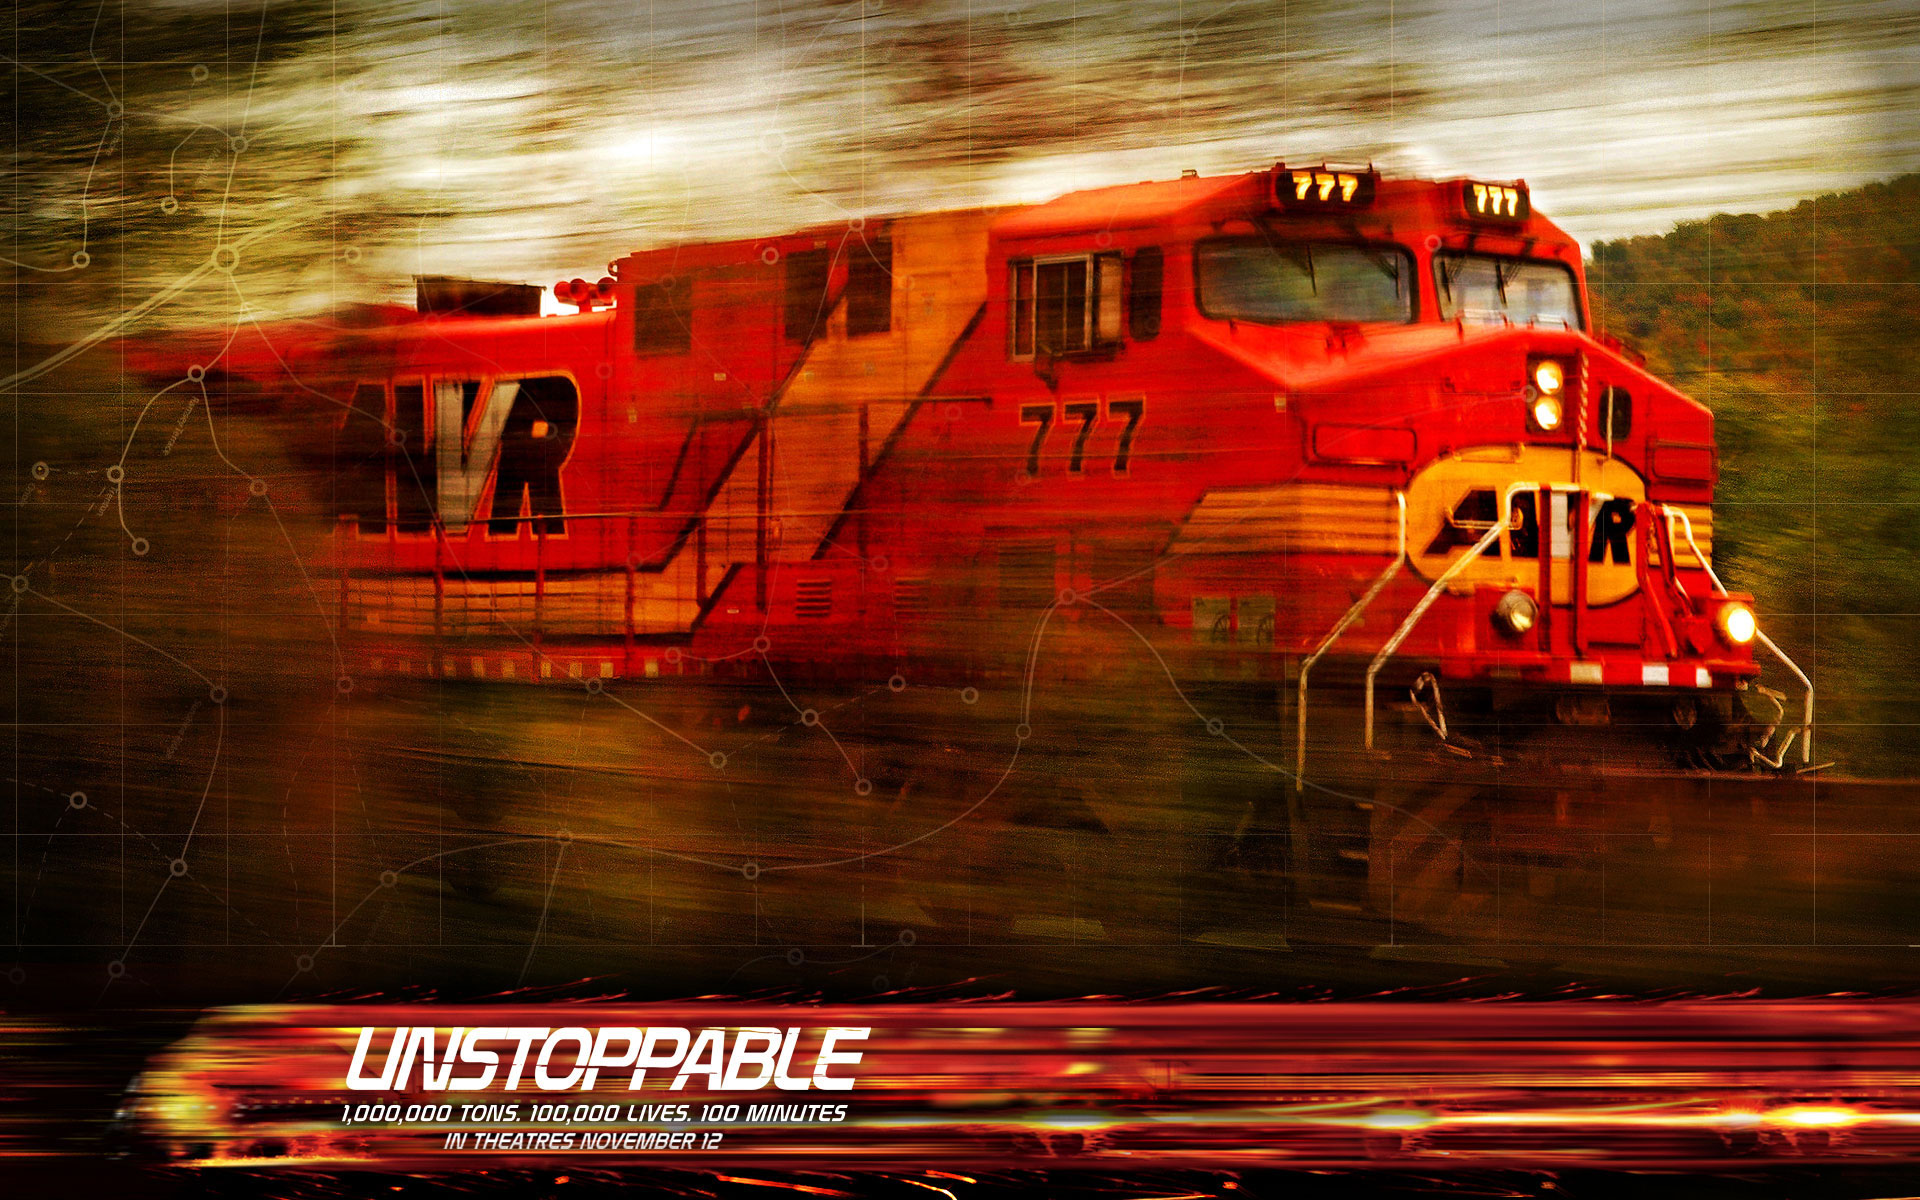 HQ Unstoppable Wallpapers | File 580.03Kb